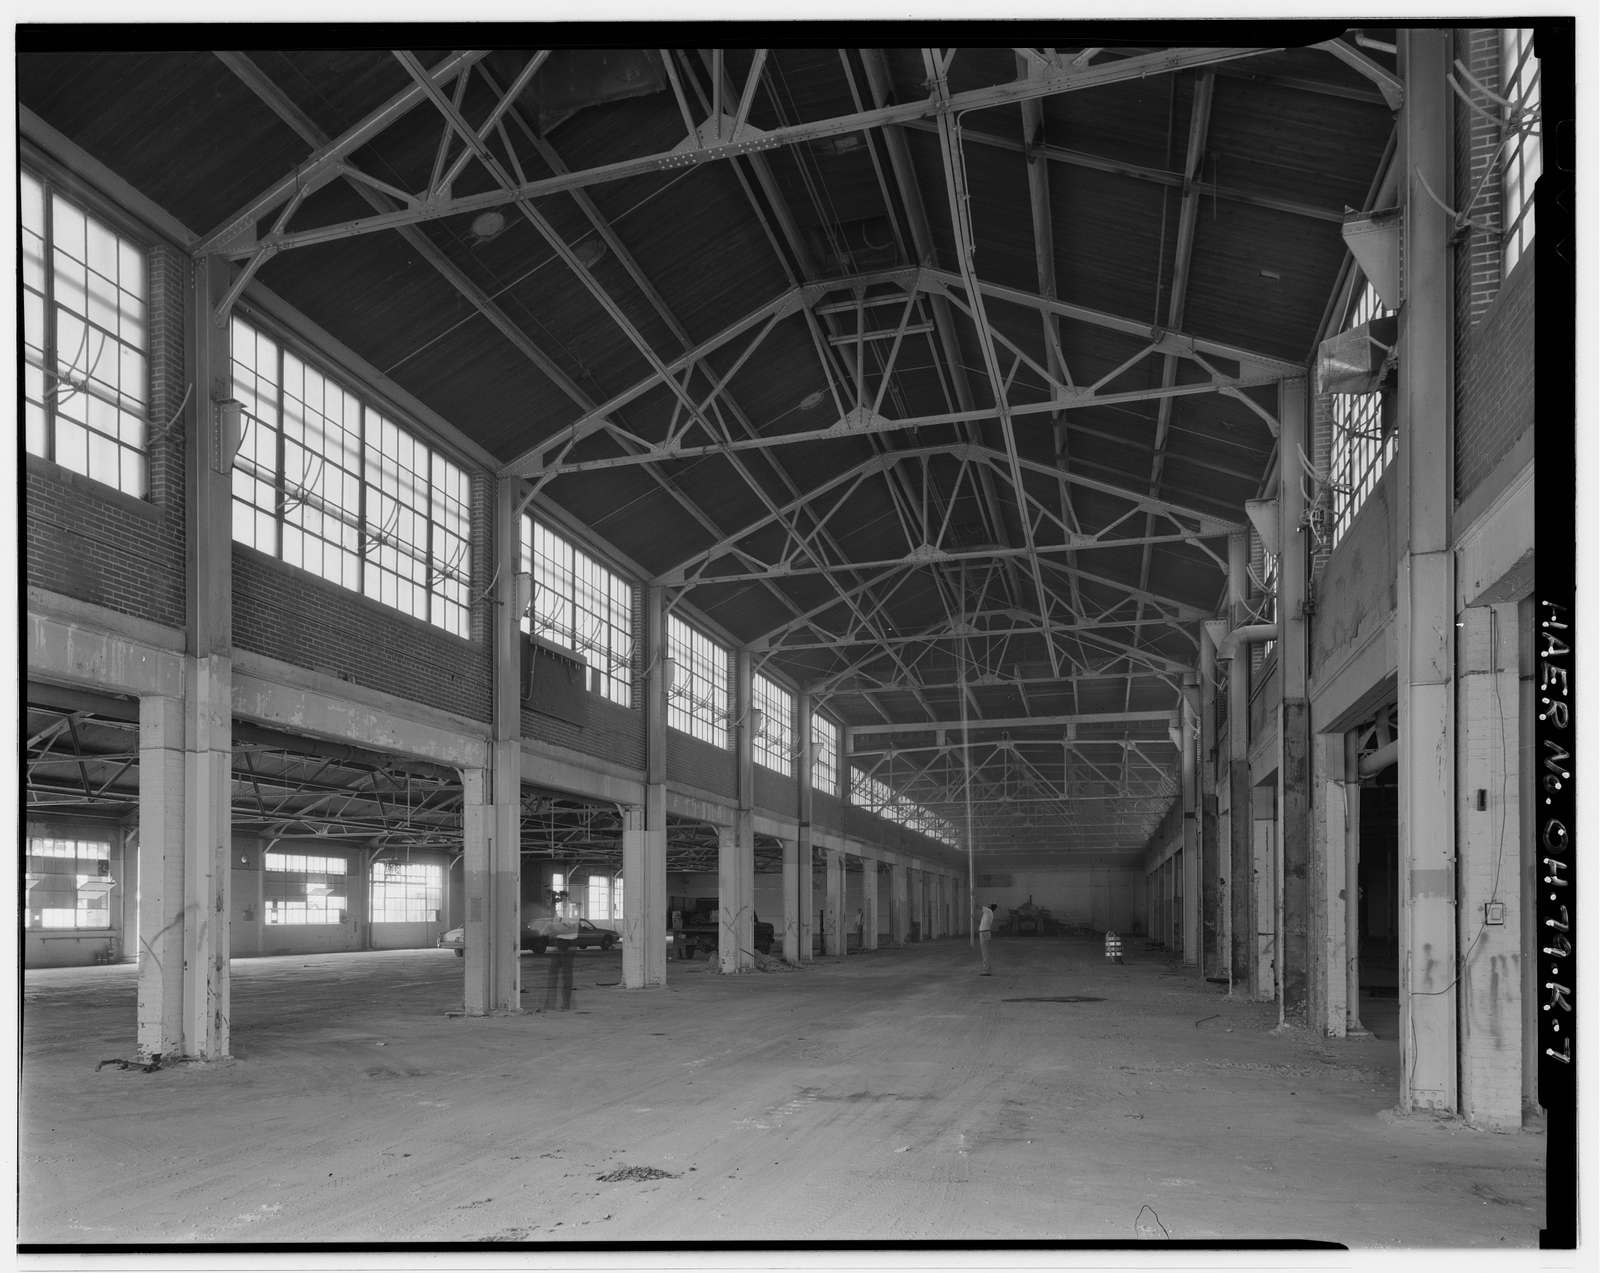 Wright-Patterson Air Force Base, Area B, Building 32, Original Wright Field Shops, Fourth Street, from D to E Streets, Dayton, Montgomery County, OH